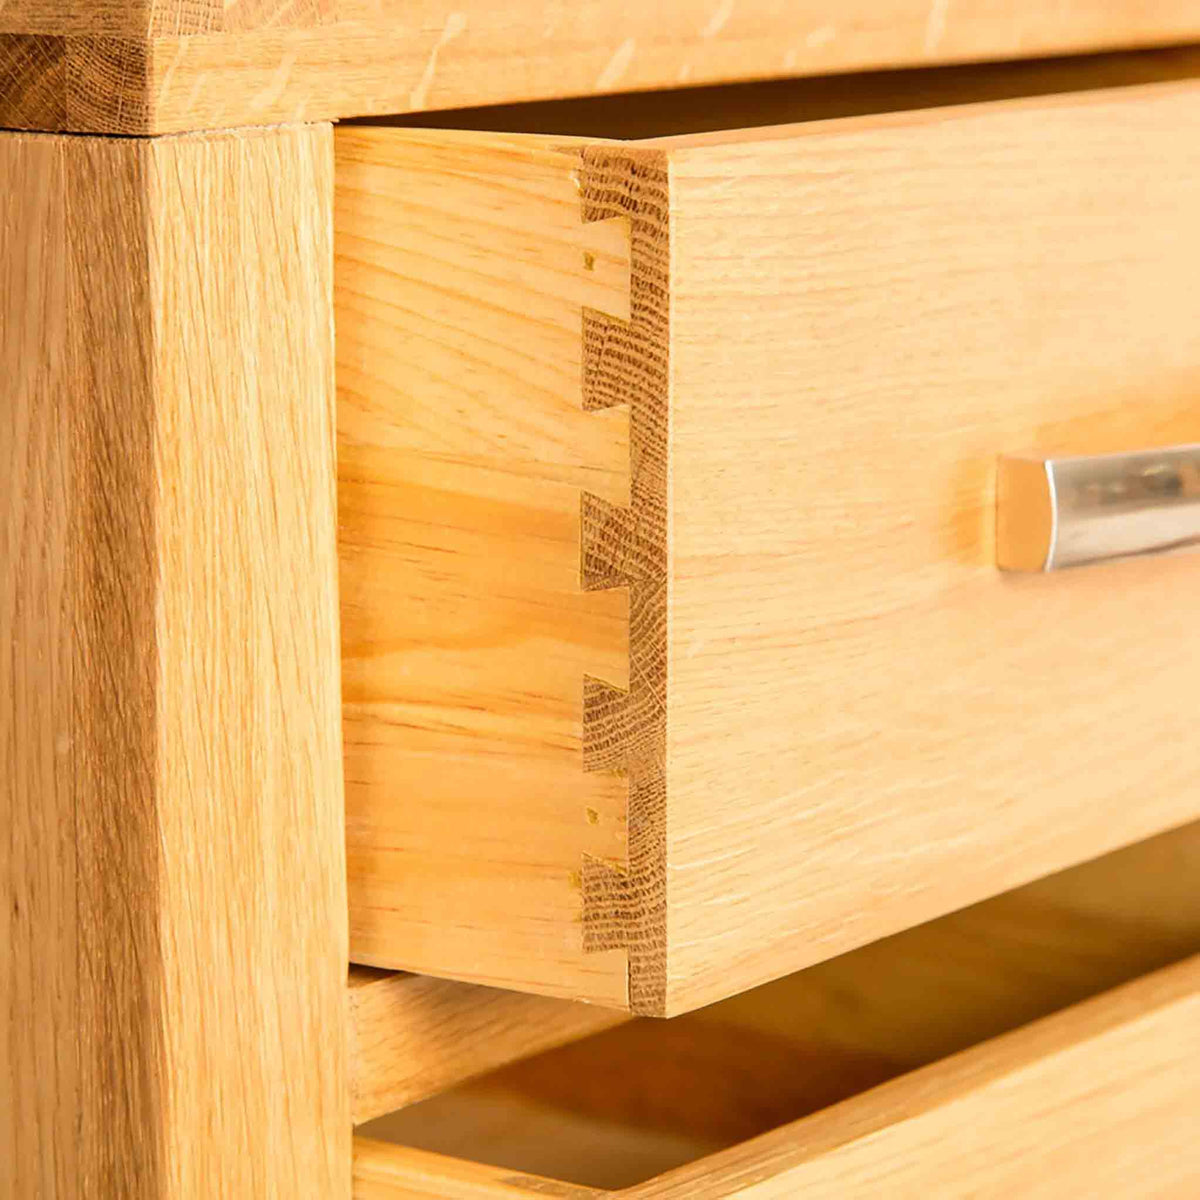 Drawer joint of the Abbey Light Oak Wooden Bedside Table by Roseland Furniture